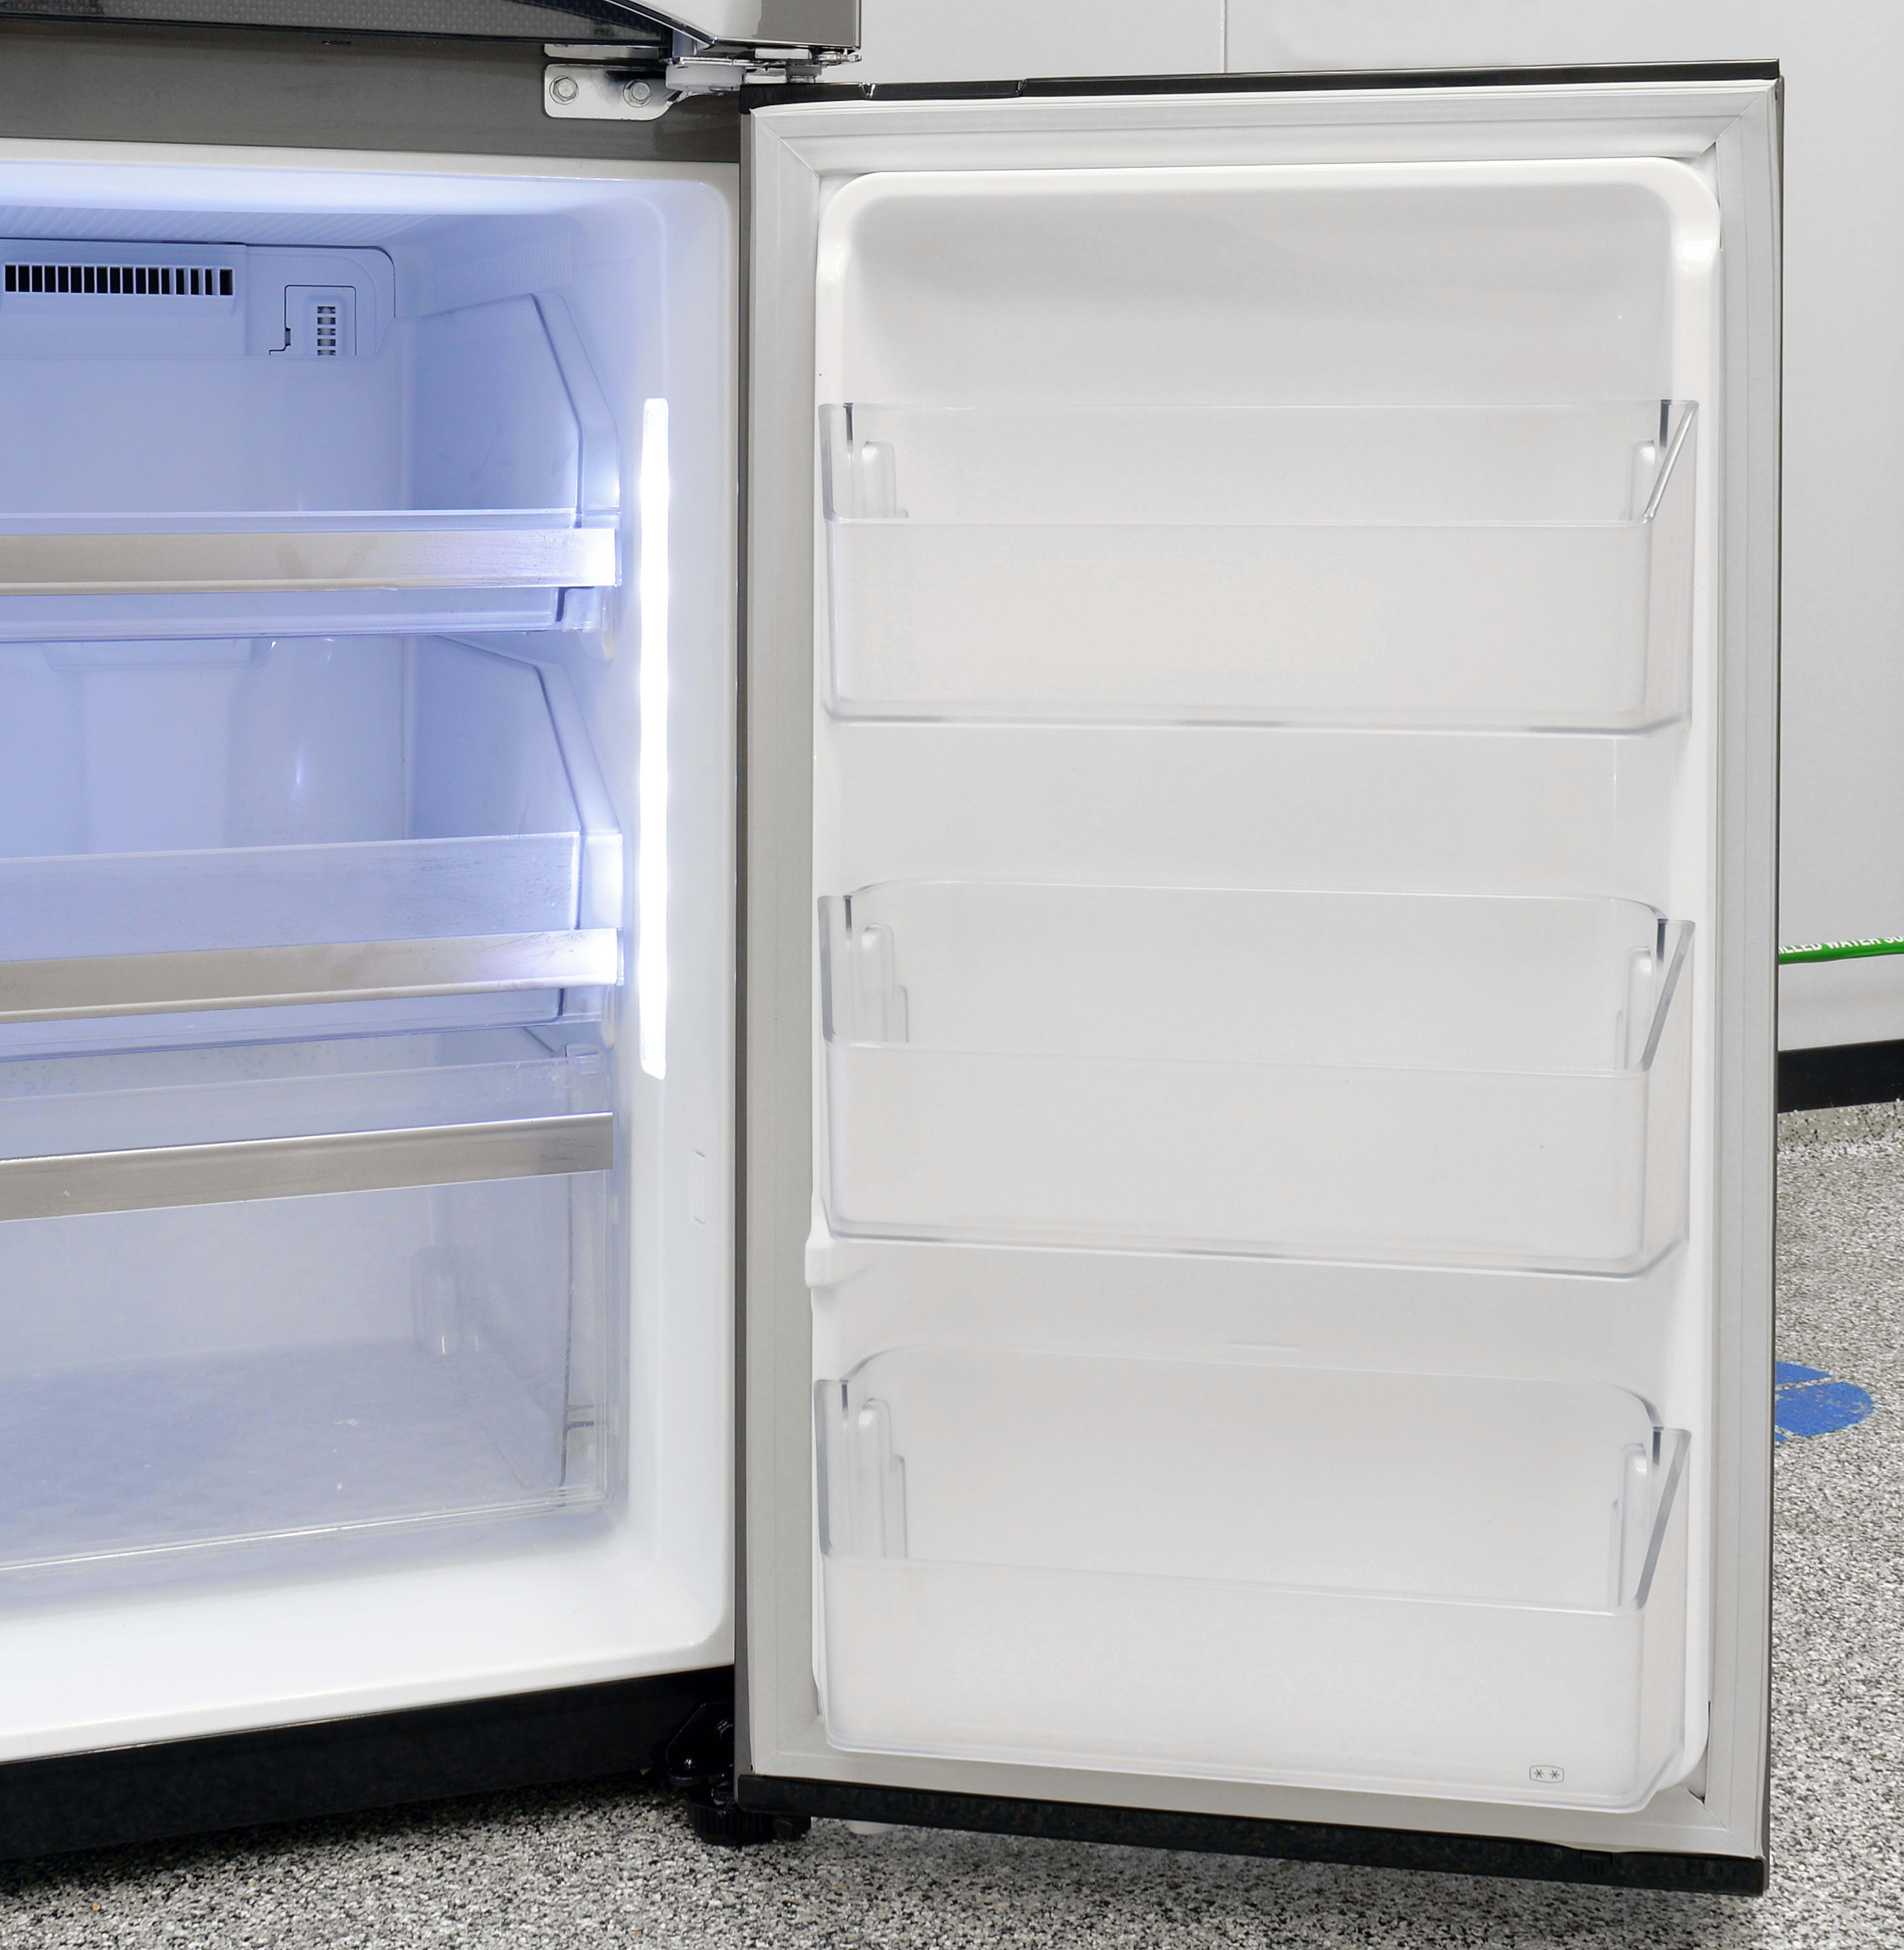 The LG LPXS30866D's freezer door storage on the right is identical to door storage on the left.